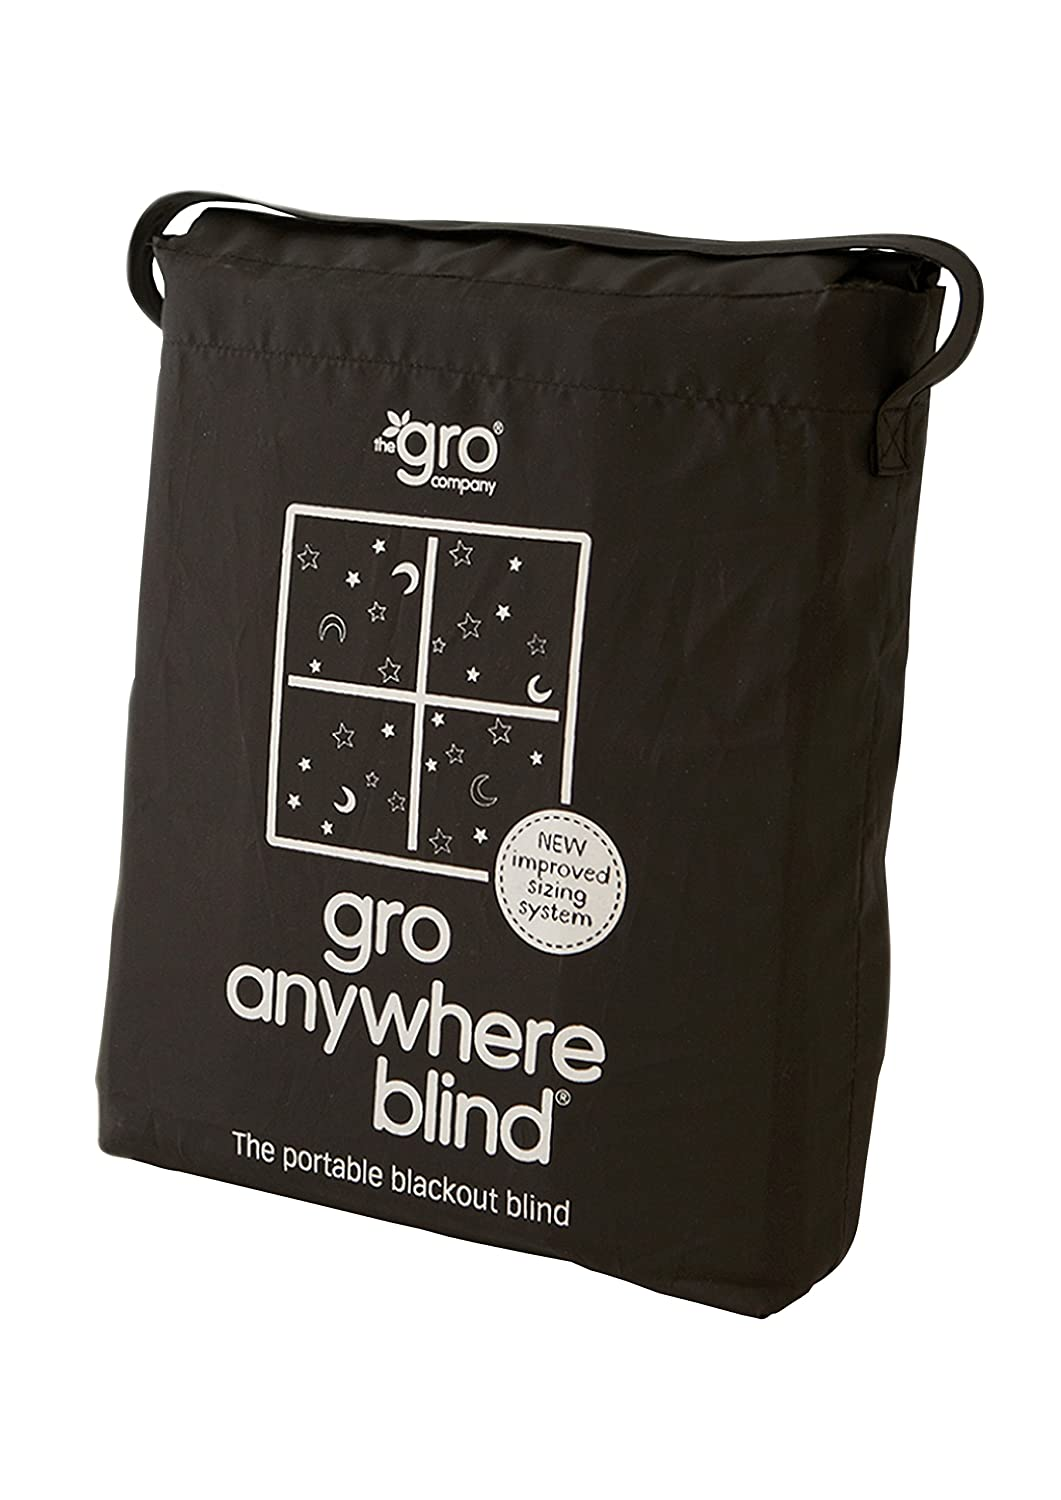 The Gro Company Gro-Anywhere Blind EFD006